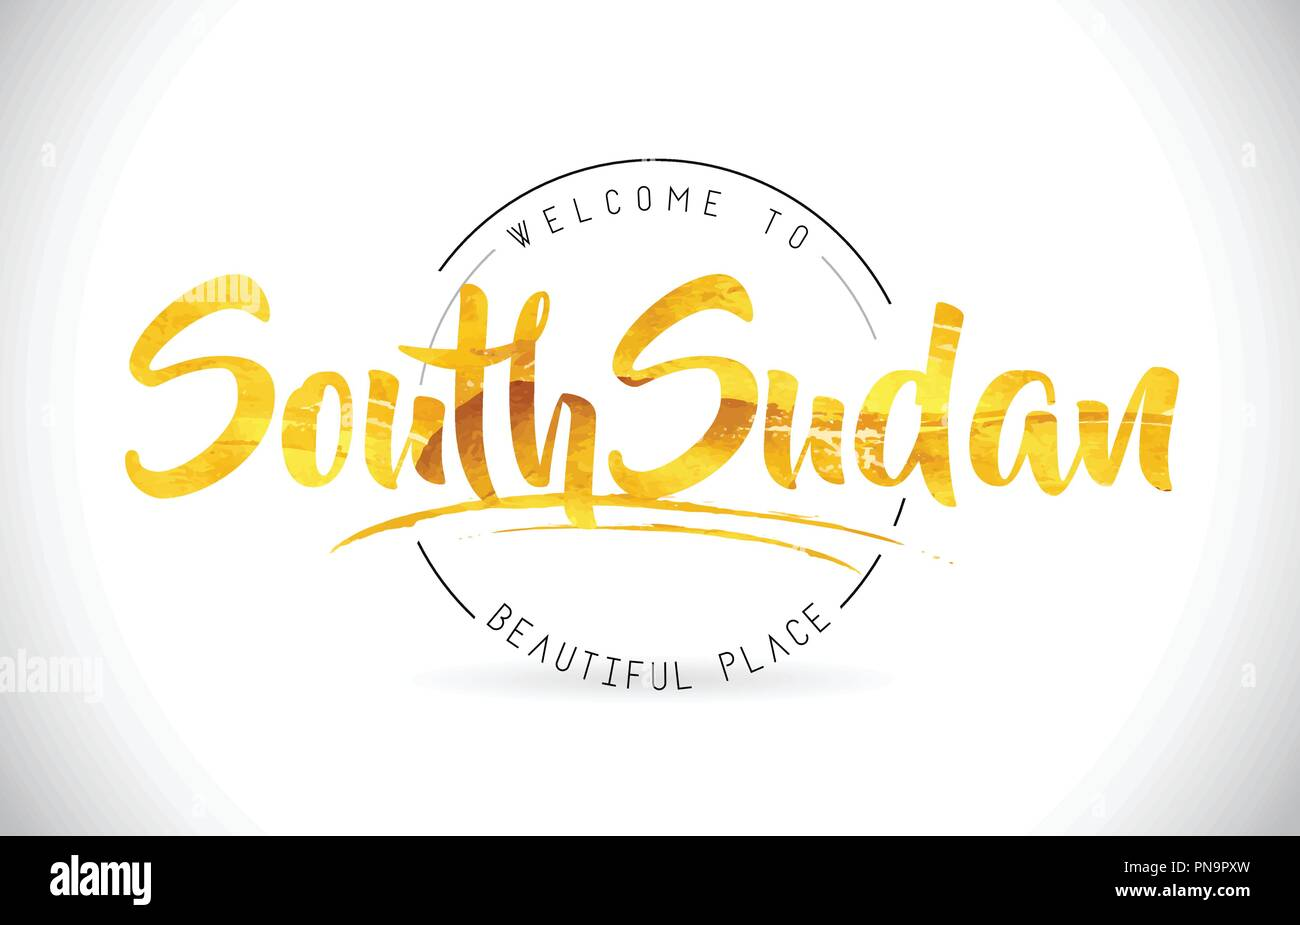 SouthSudan Welcome To Word Text with Handwritten Font and Golden Texture Design Illustration Vector. - Stock Image